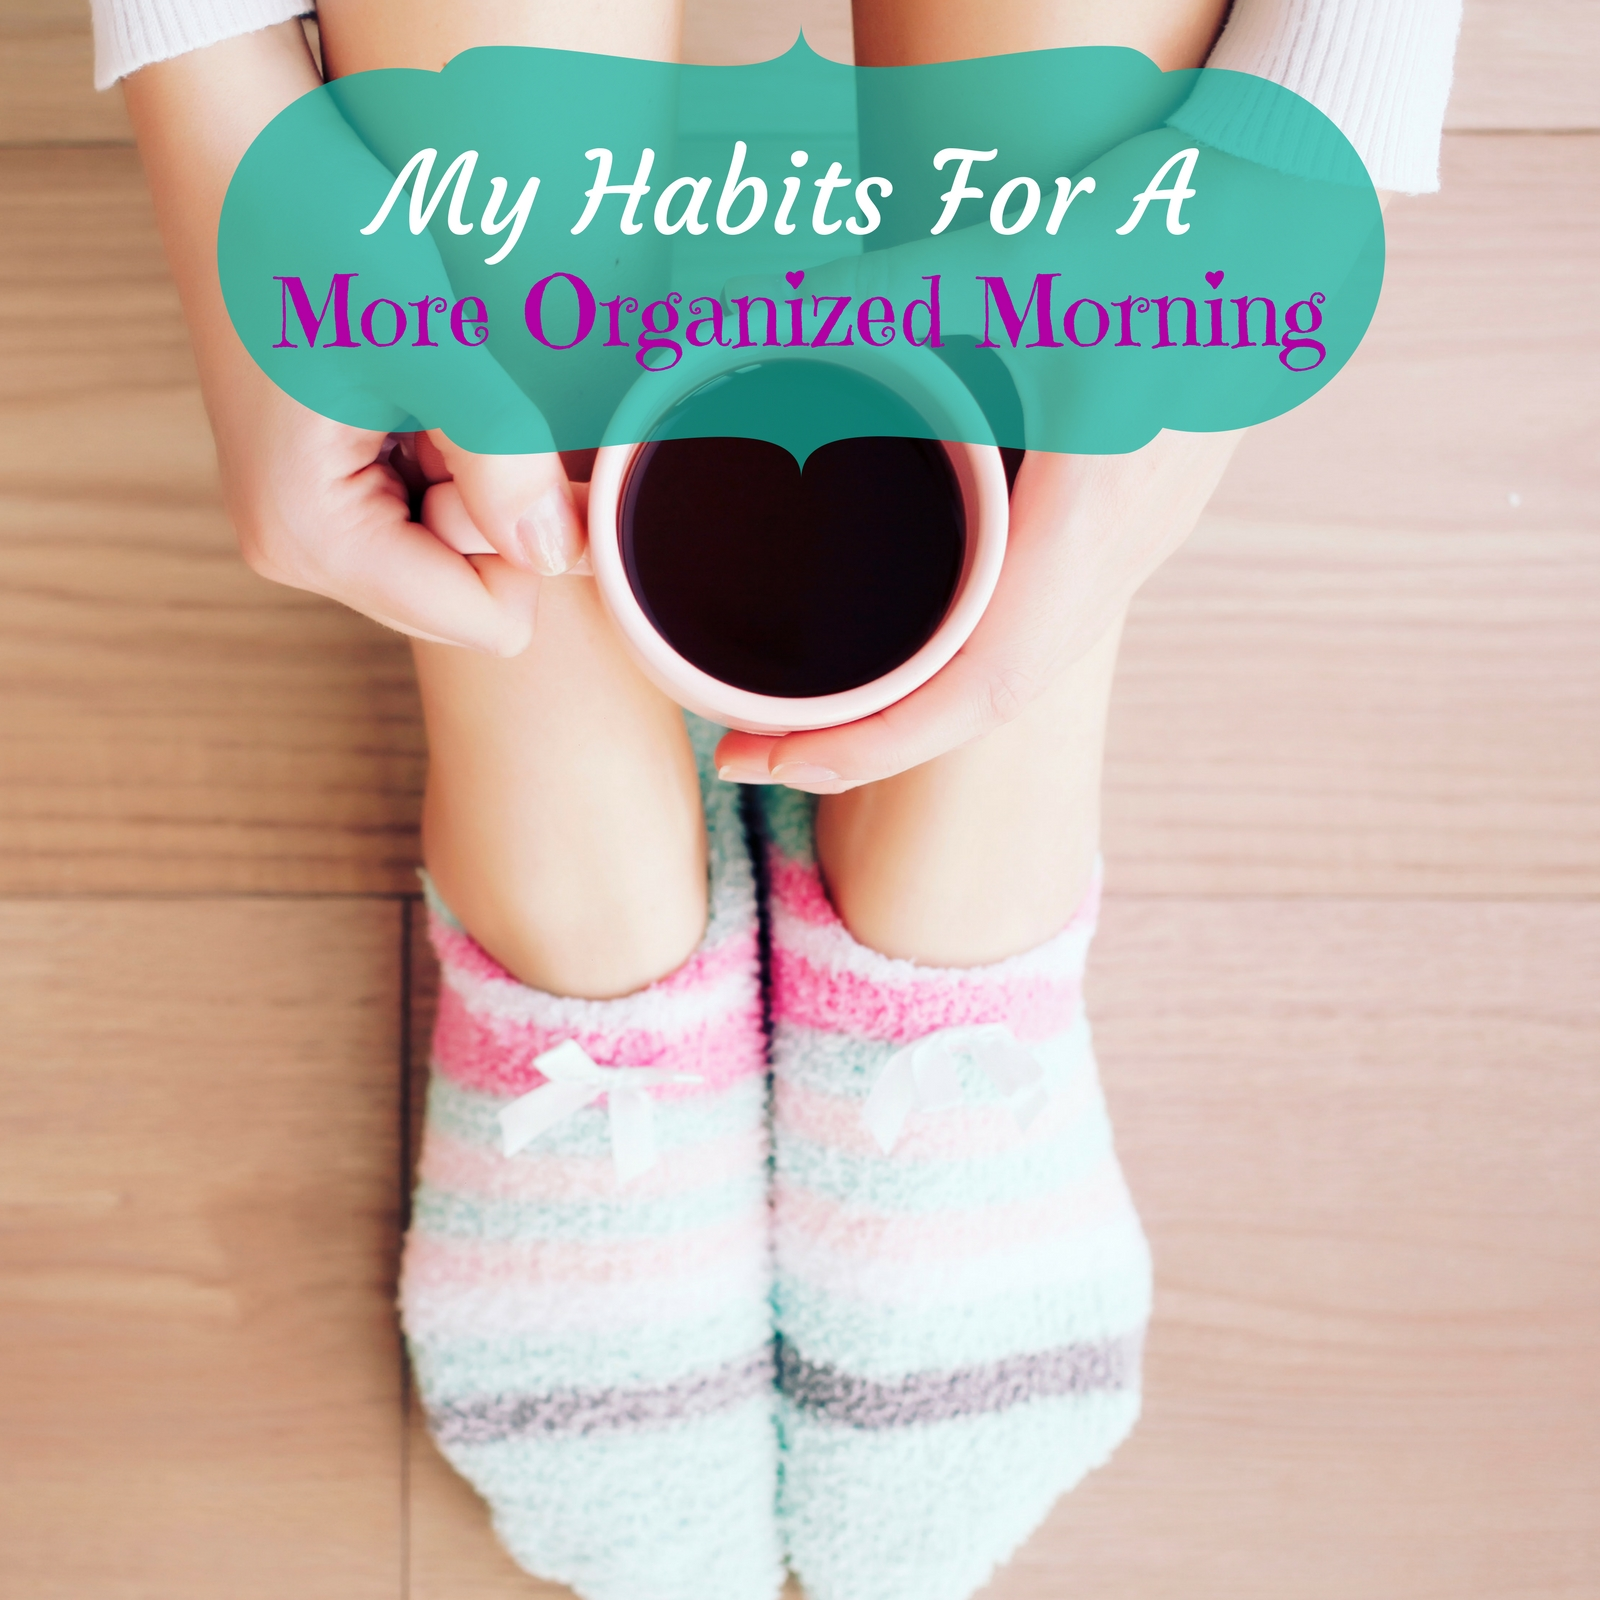 Habits for a More Organized Morning